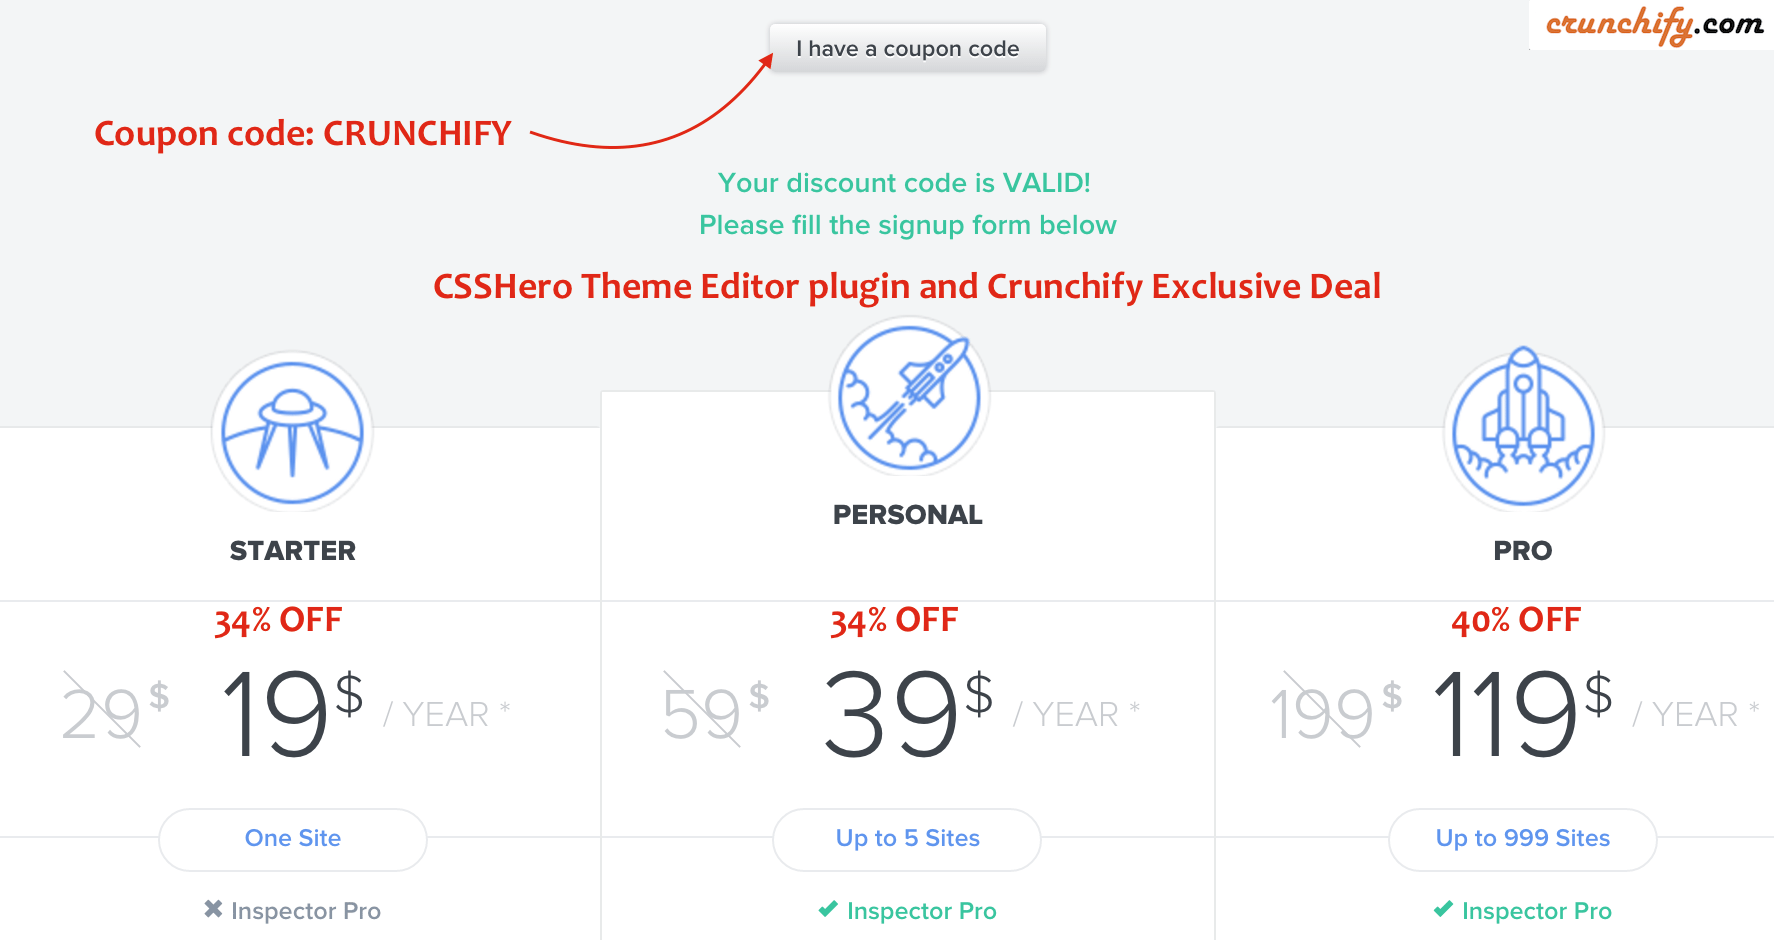 CSSHero Theme Editor plugin and Crunchify Exclusive Deal code-CRUNCHIFY